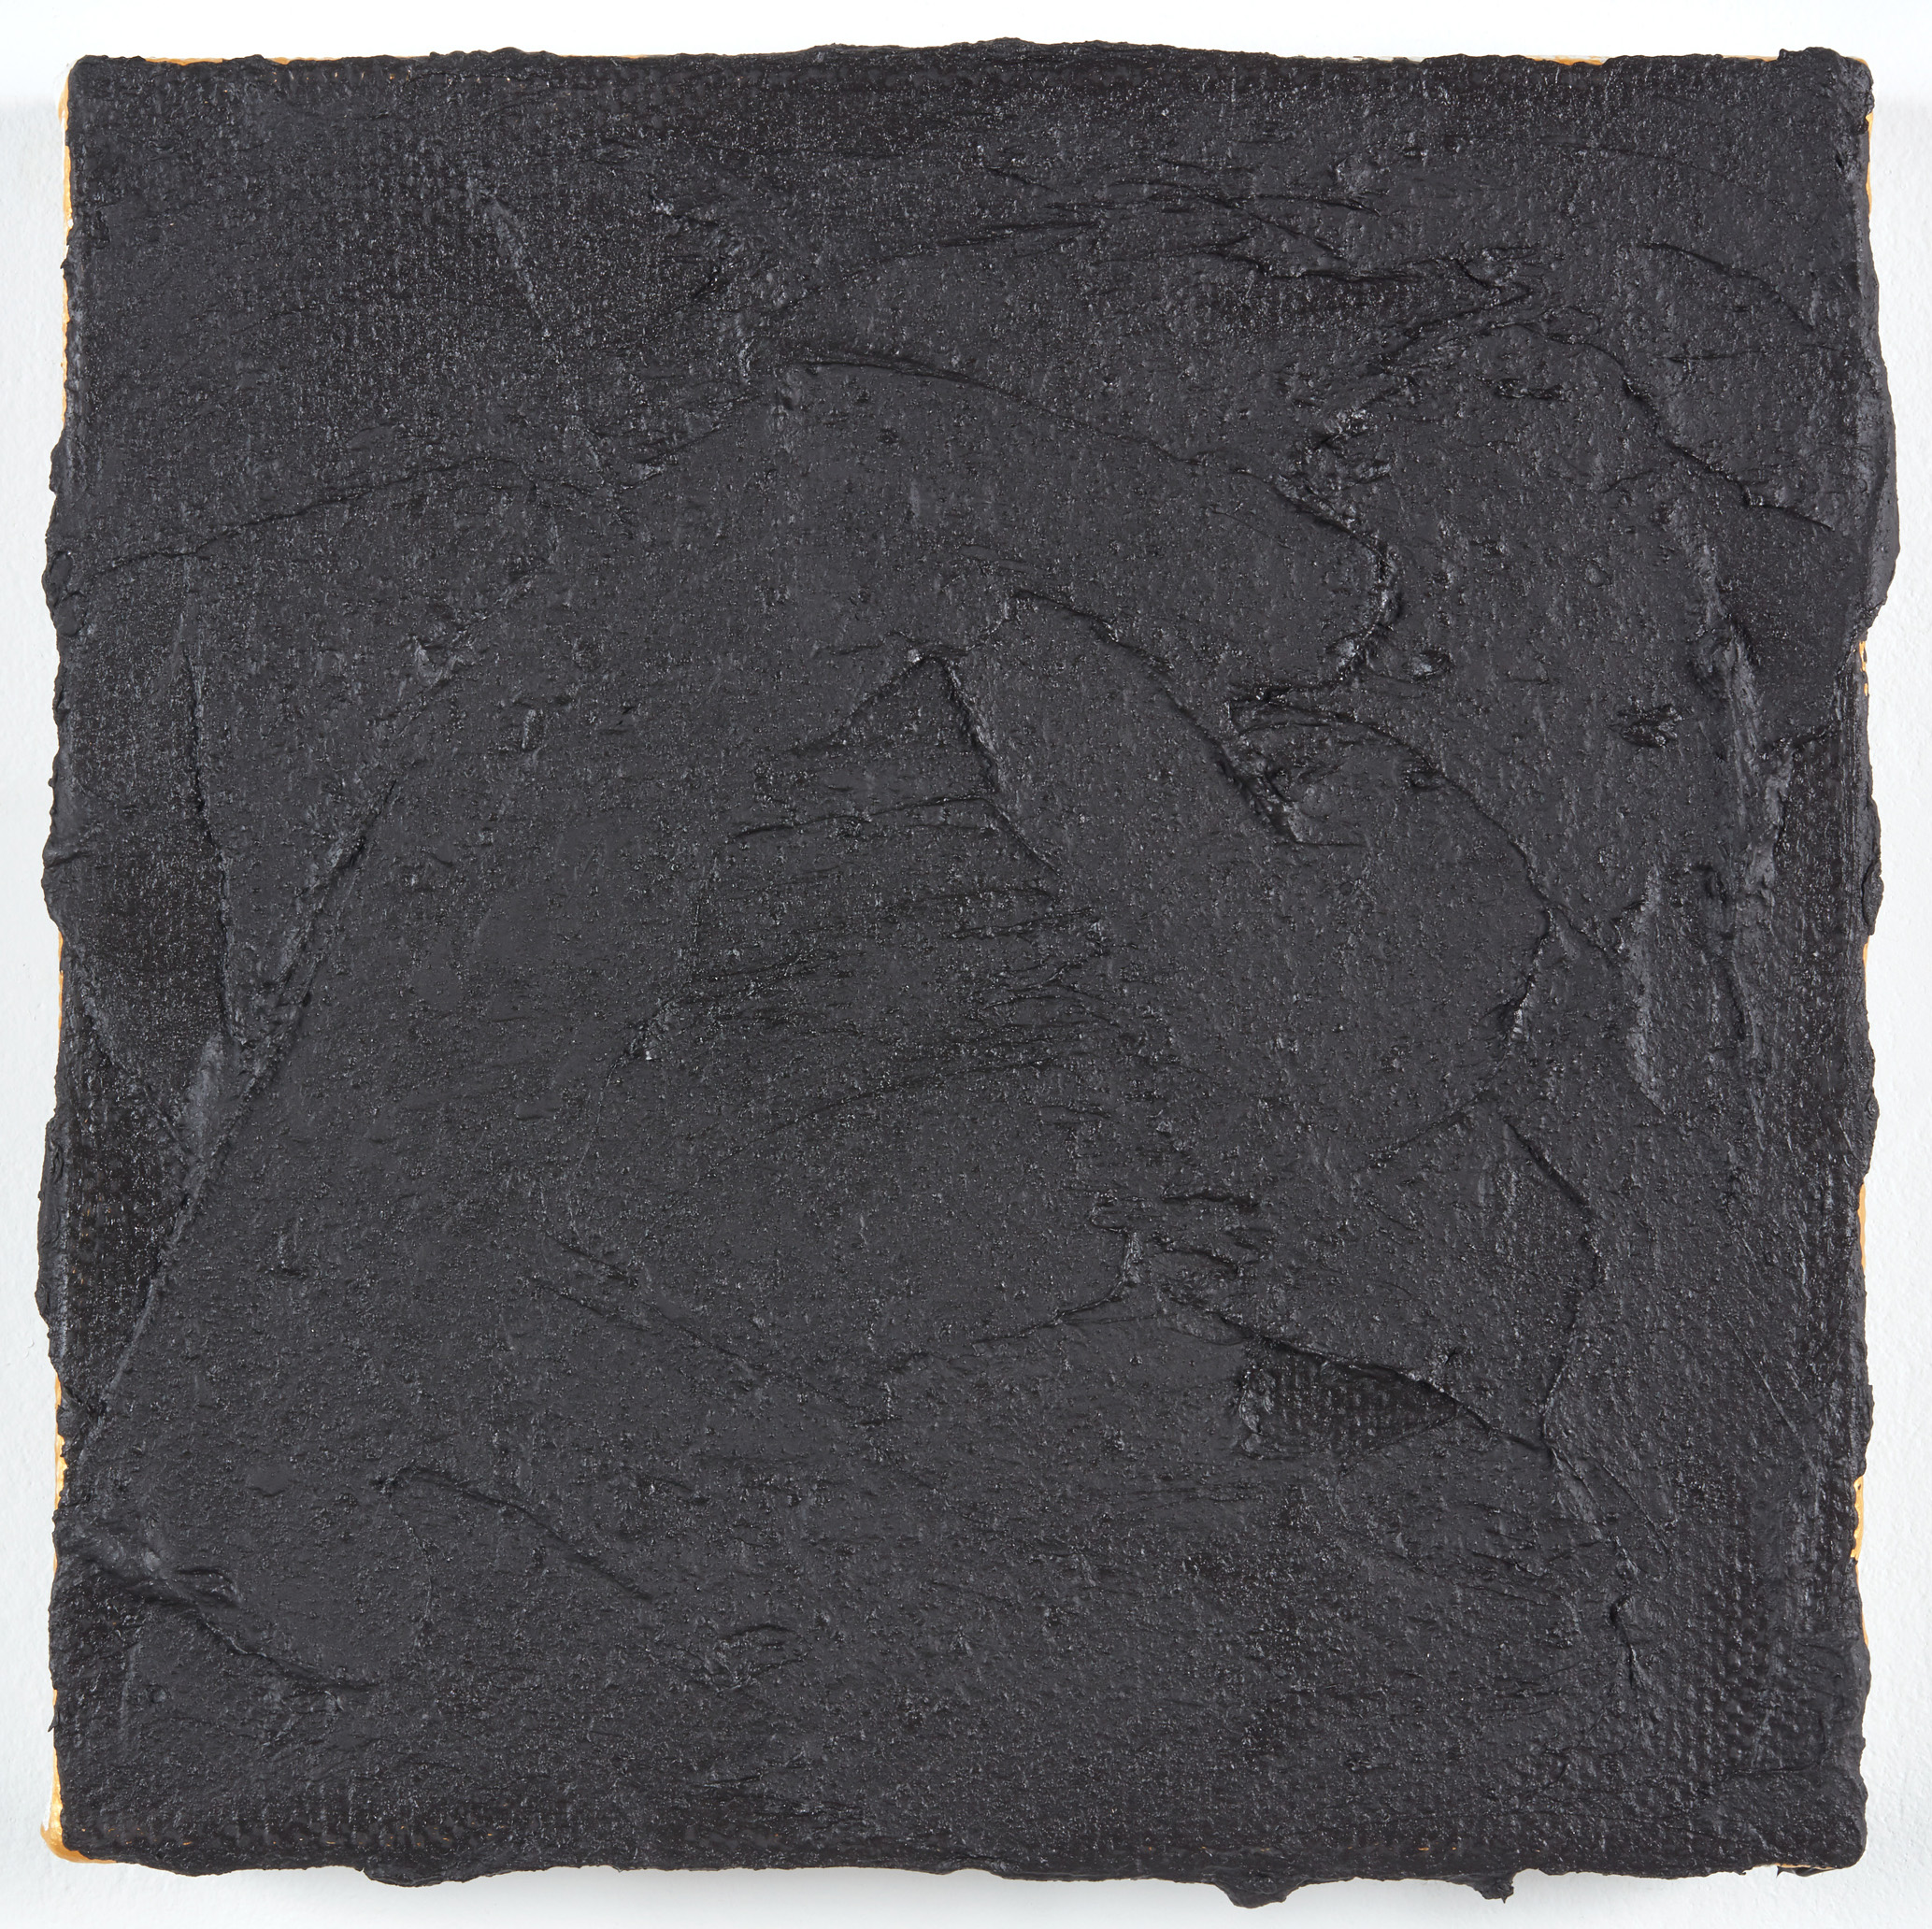 DAVID SERISIER  black on gold square painting no.2 , 2019 oil, wax and acrylic on linen